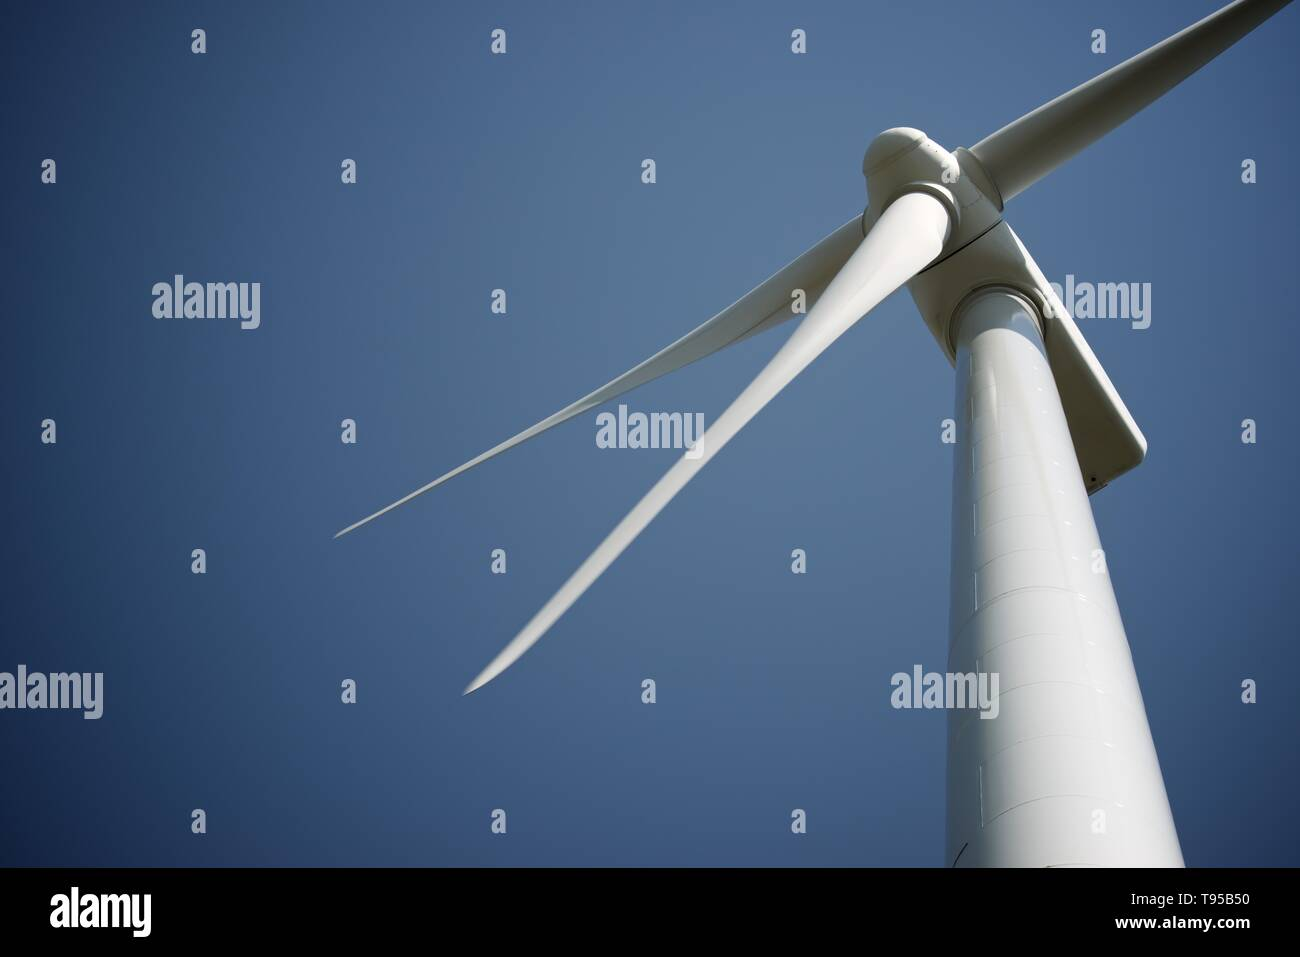 Windmill for electric power production, Soria Province, Castilla Leon, Spain. - Stock Image